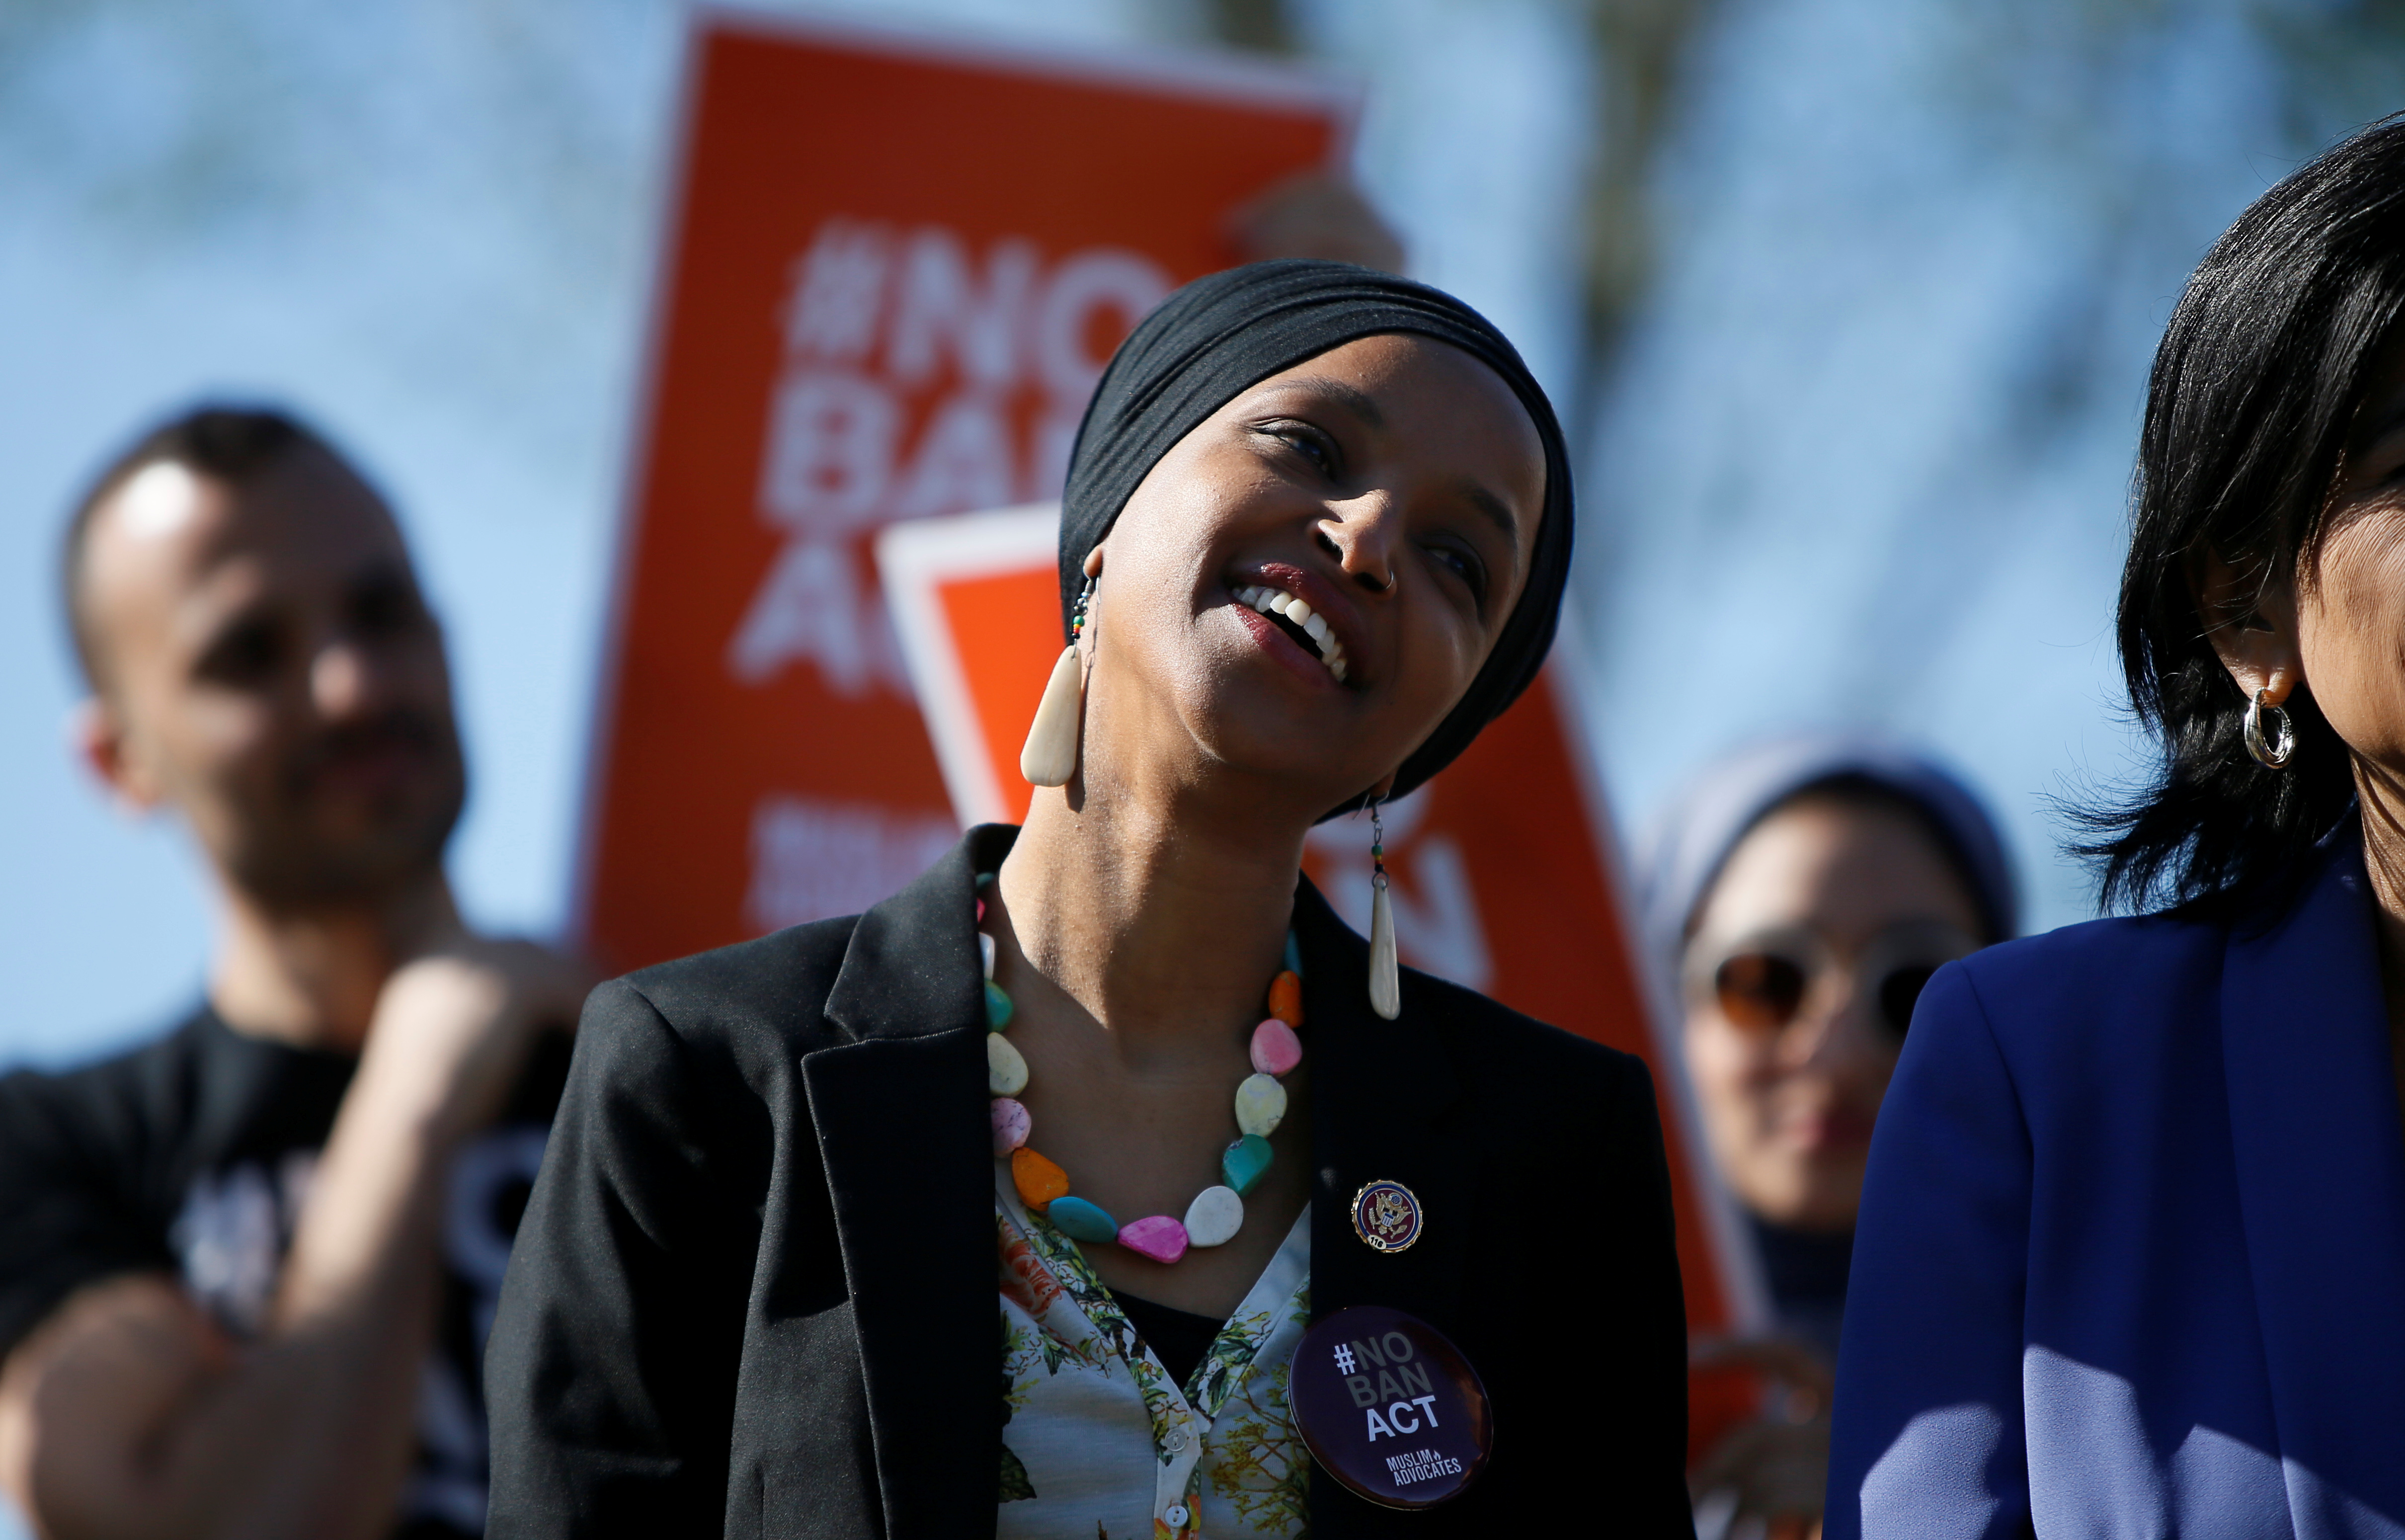 """Rep. Ilhan Omar (D-MN) smiles during a news conference by members of the U.S. Congress """"to announce legislation to repeal President Trump's existing executive order blocking travel from majority Muslim countries"""" outside the U.S. Capitol in Washington, U.S., April 10, 2019. REUTERS/Jim Bourg"""